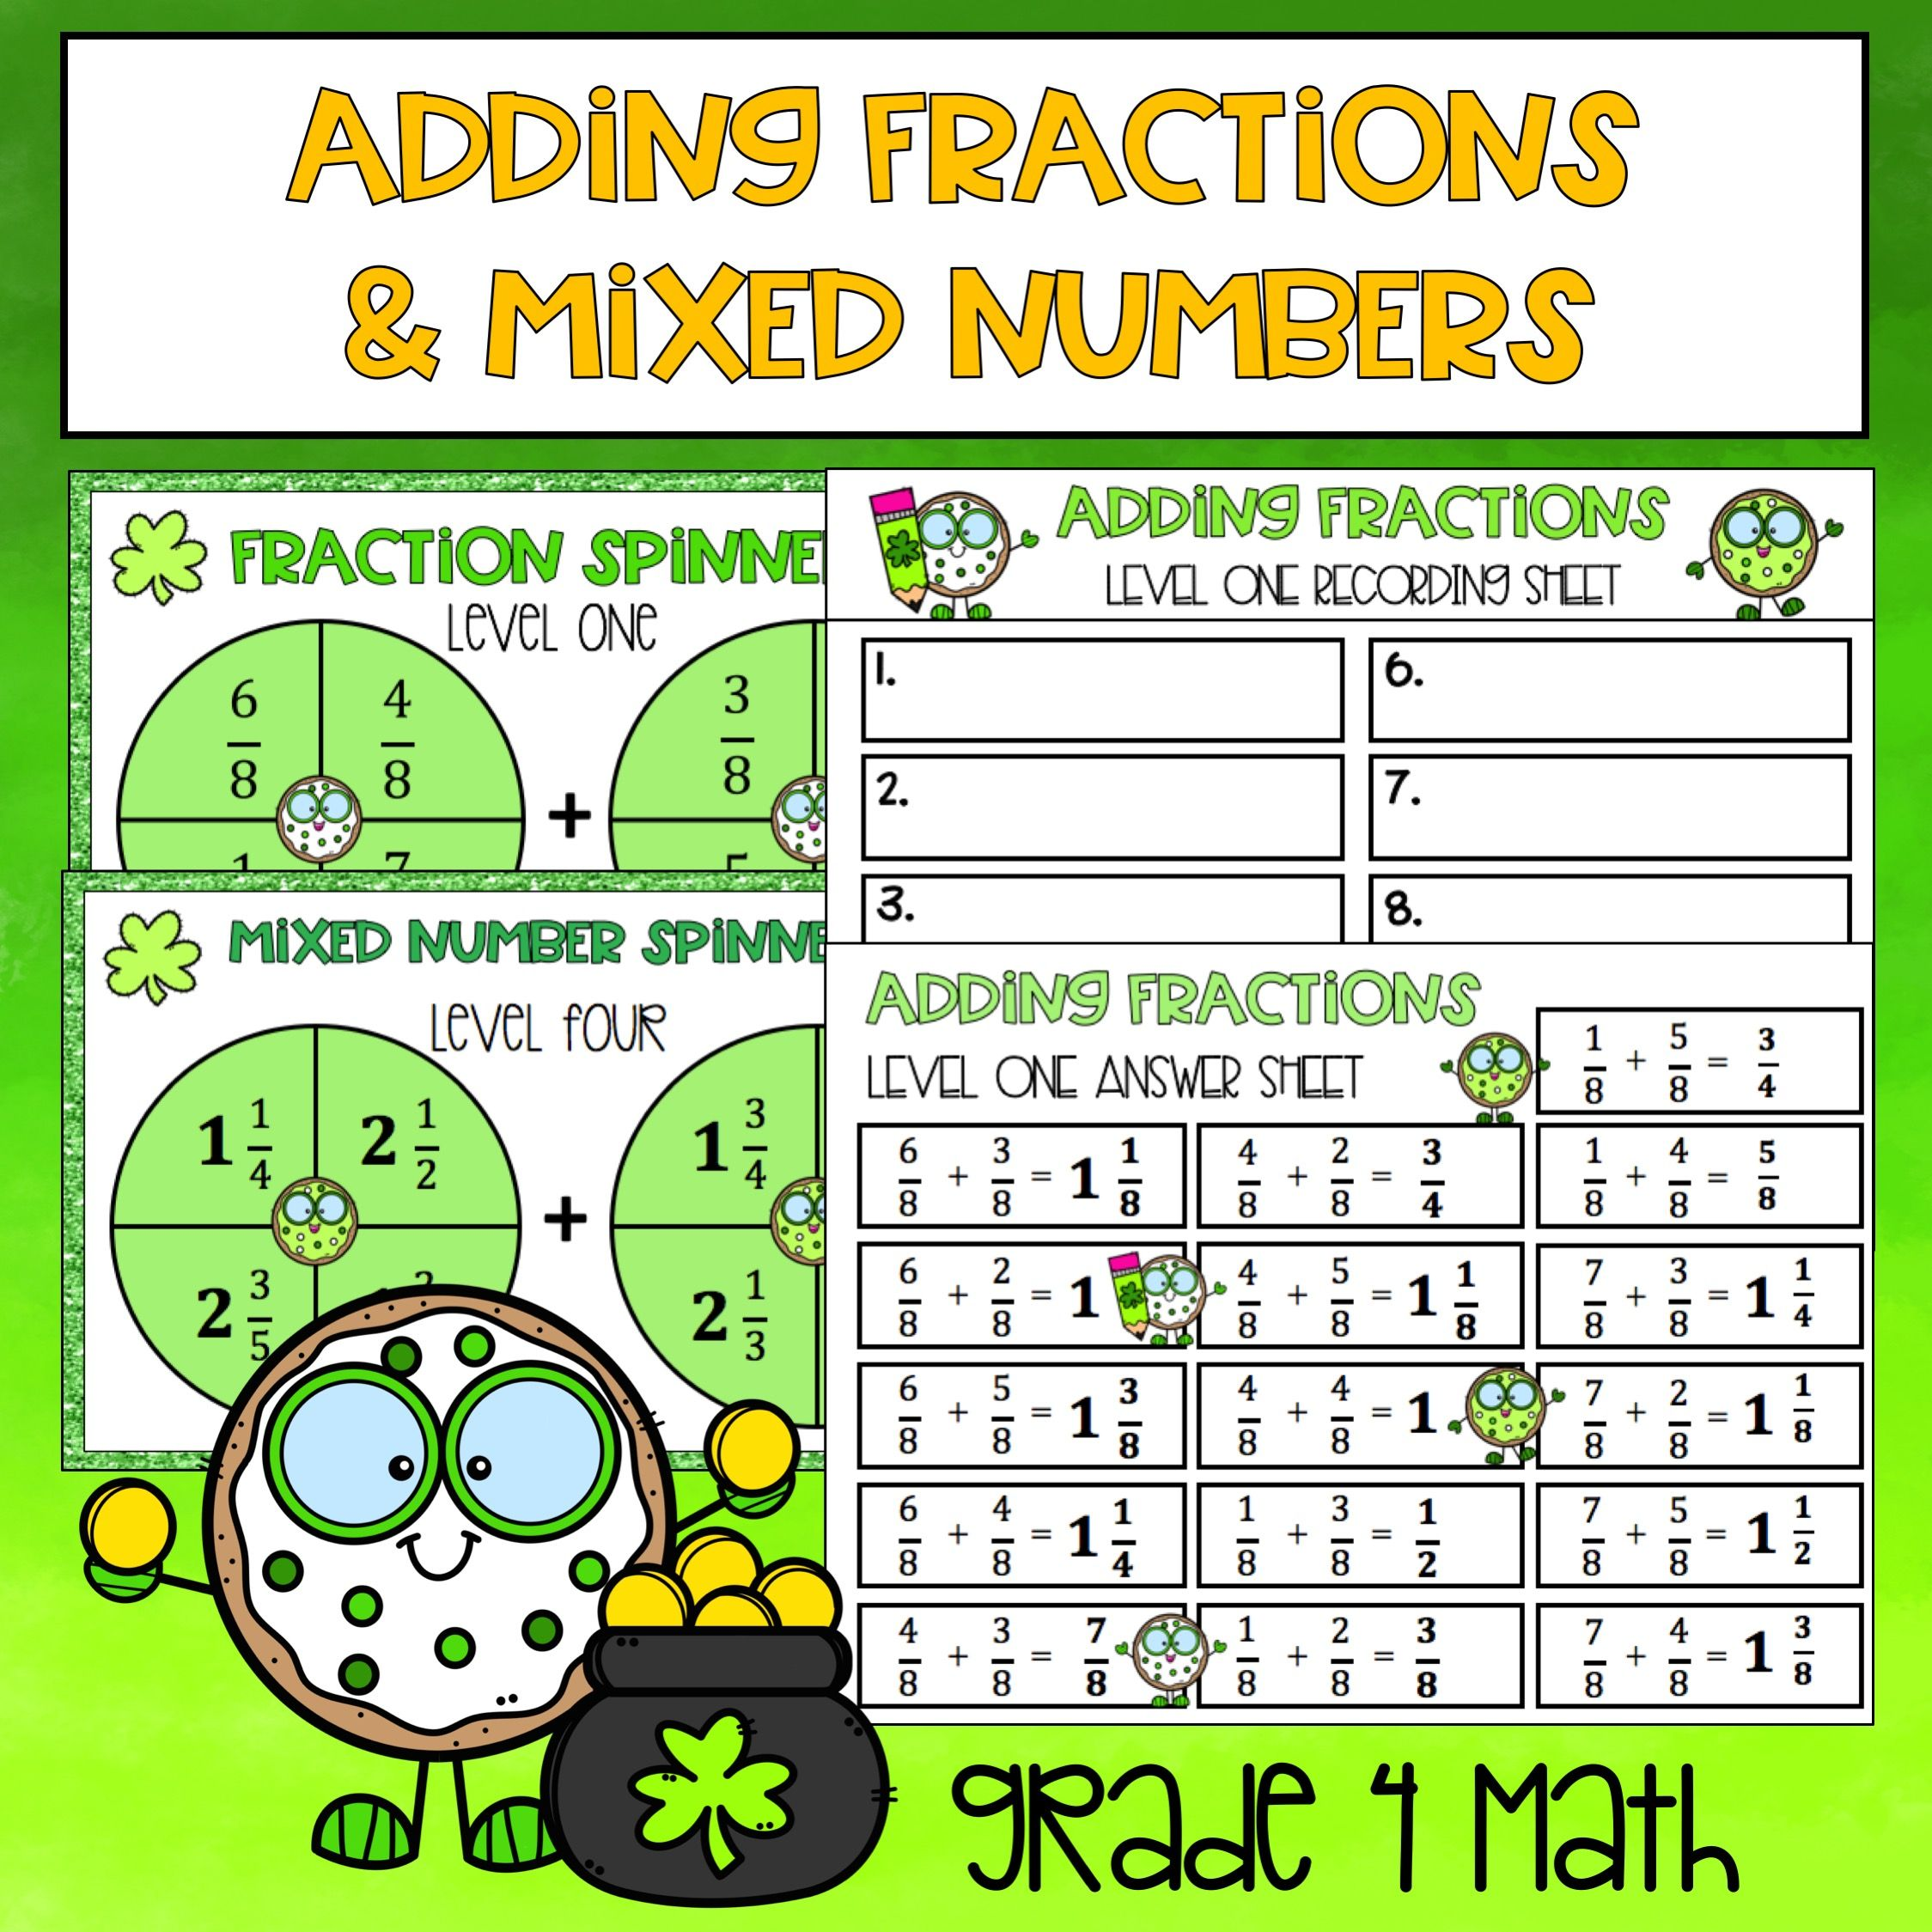 Adding Fractions And Mixed Numbers